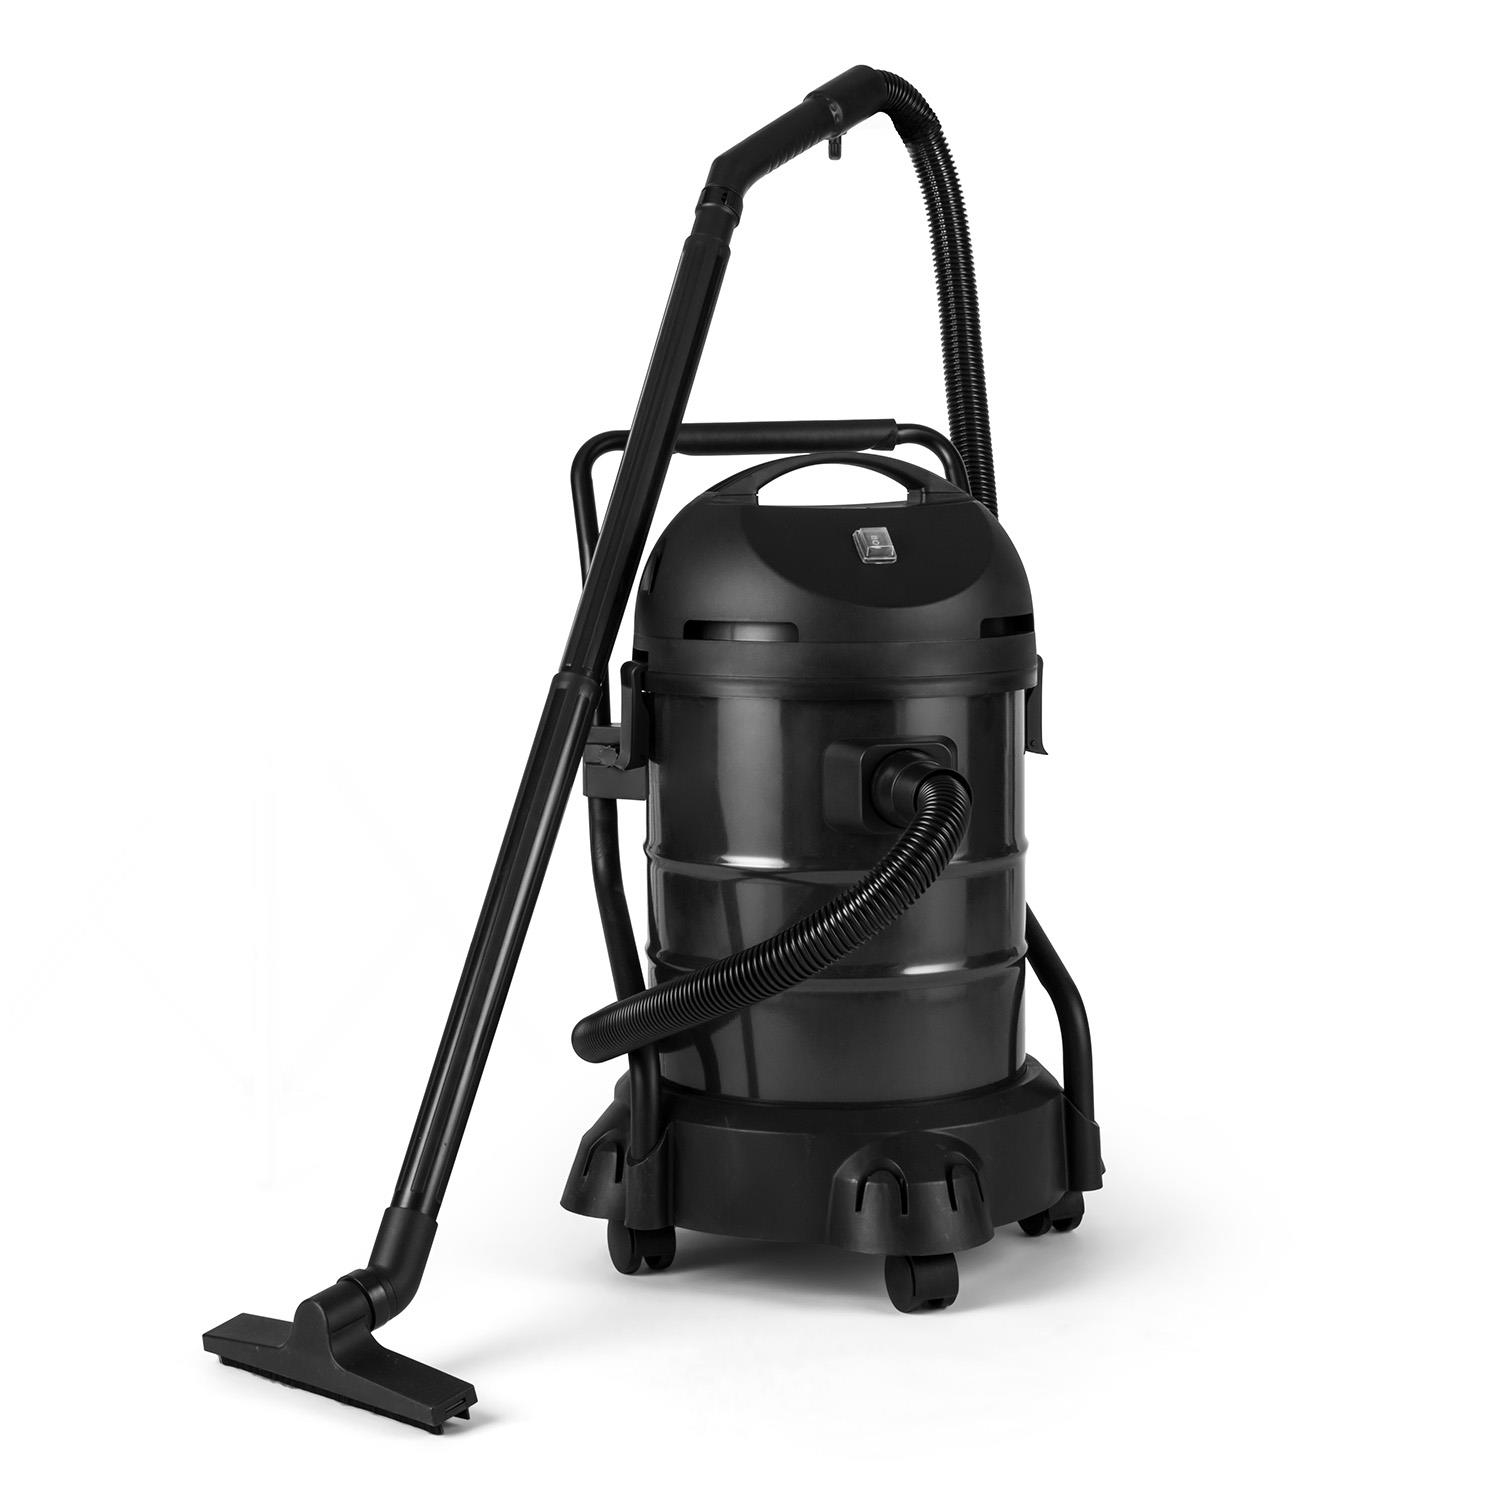 Tank Vacuum Cleaners: 1200W GARDEN POND VACUUM CLEANER SLUDGE REMOVER WATER FISH